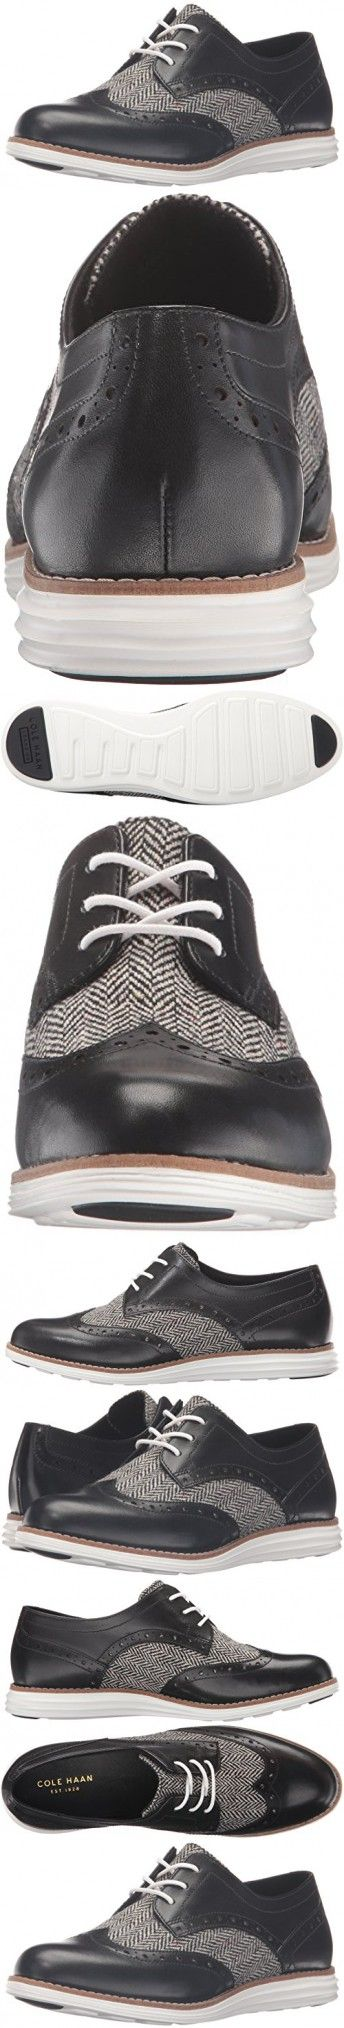 Cole Haan Women's Original Grand Wingtip Oxford, Black Natural Tweed/Black Leather/Optic White, 9 B US